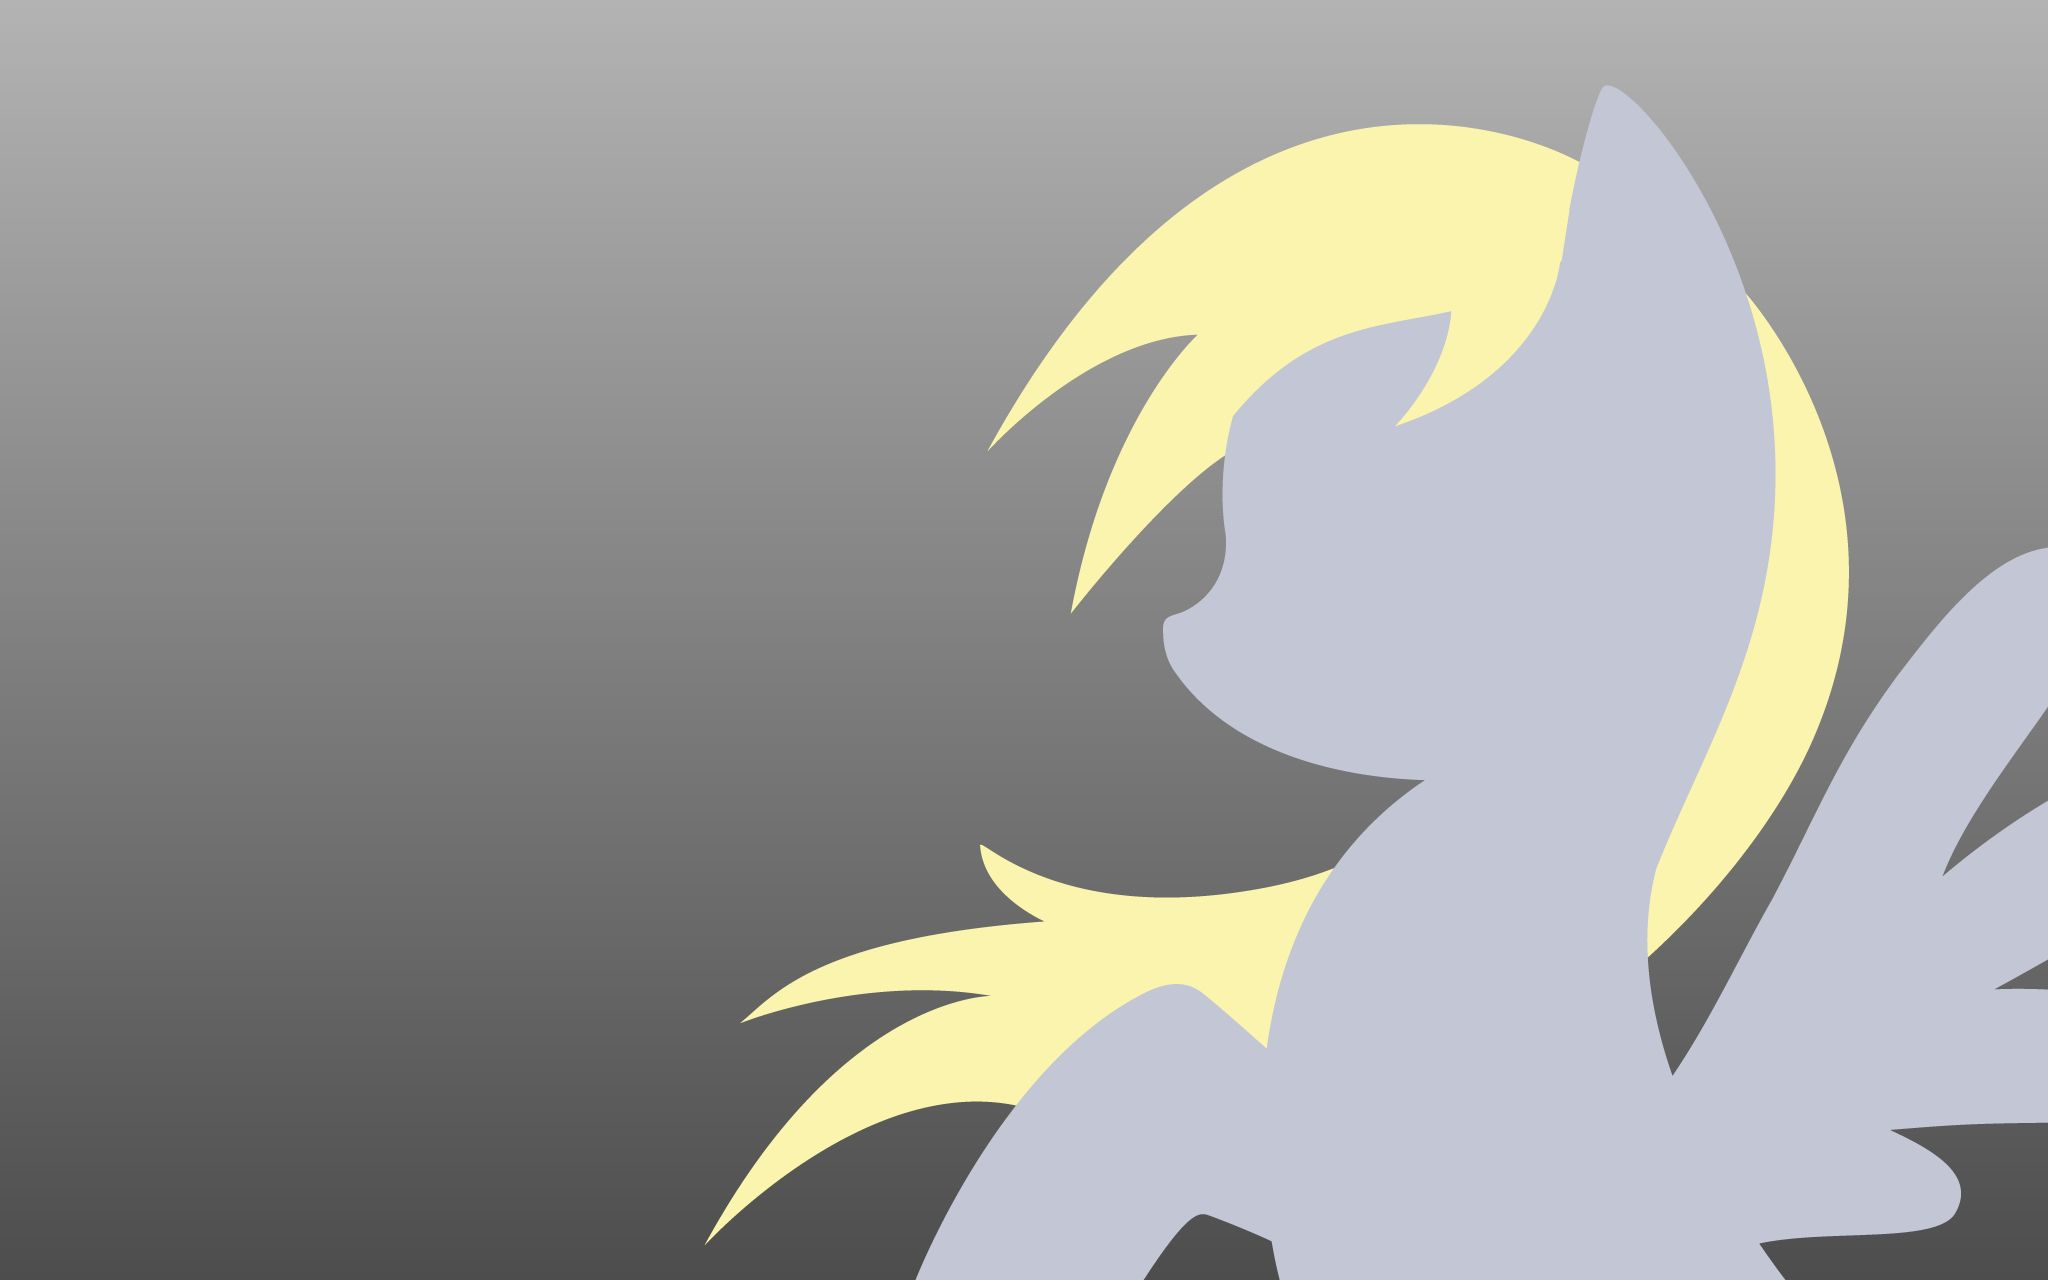 pin by xavier andrews on derpy hooves pinterest